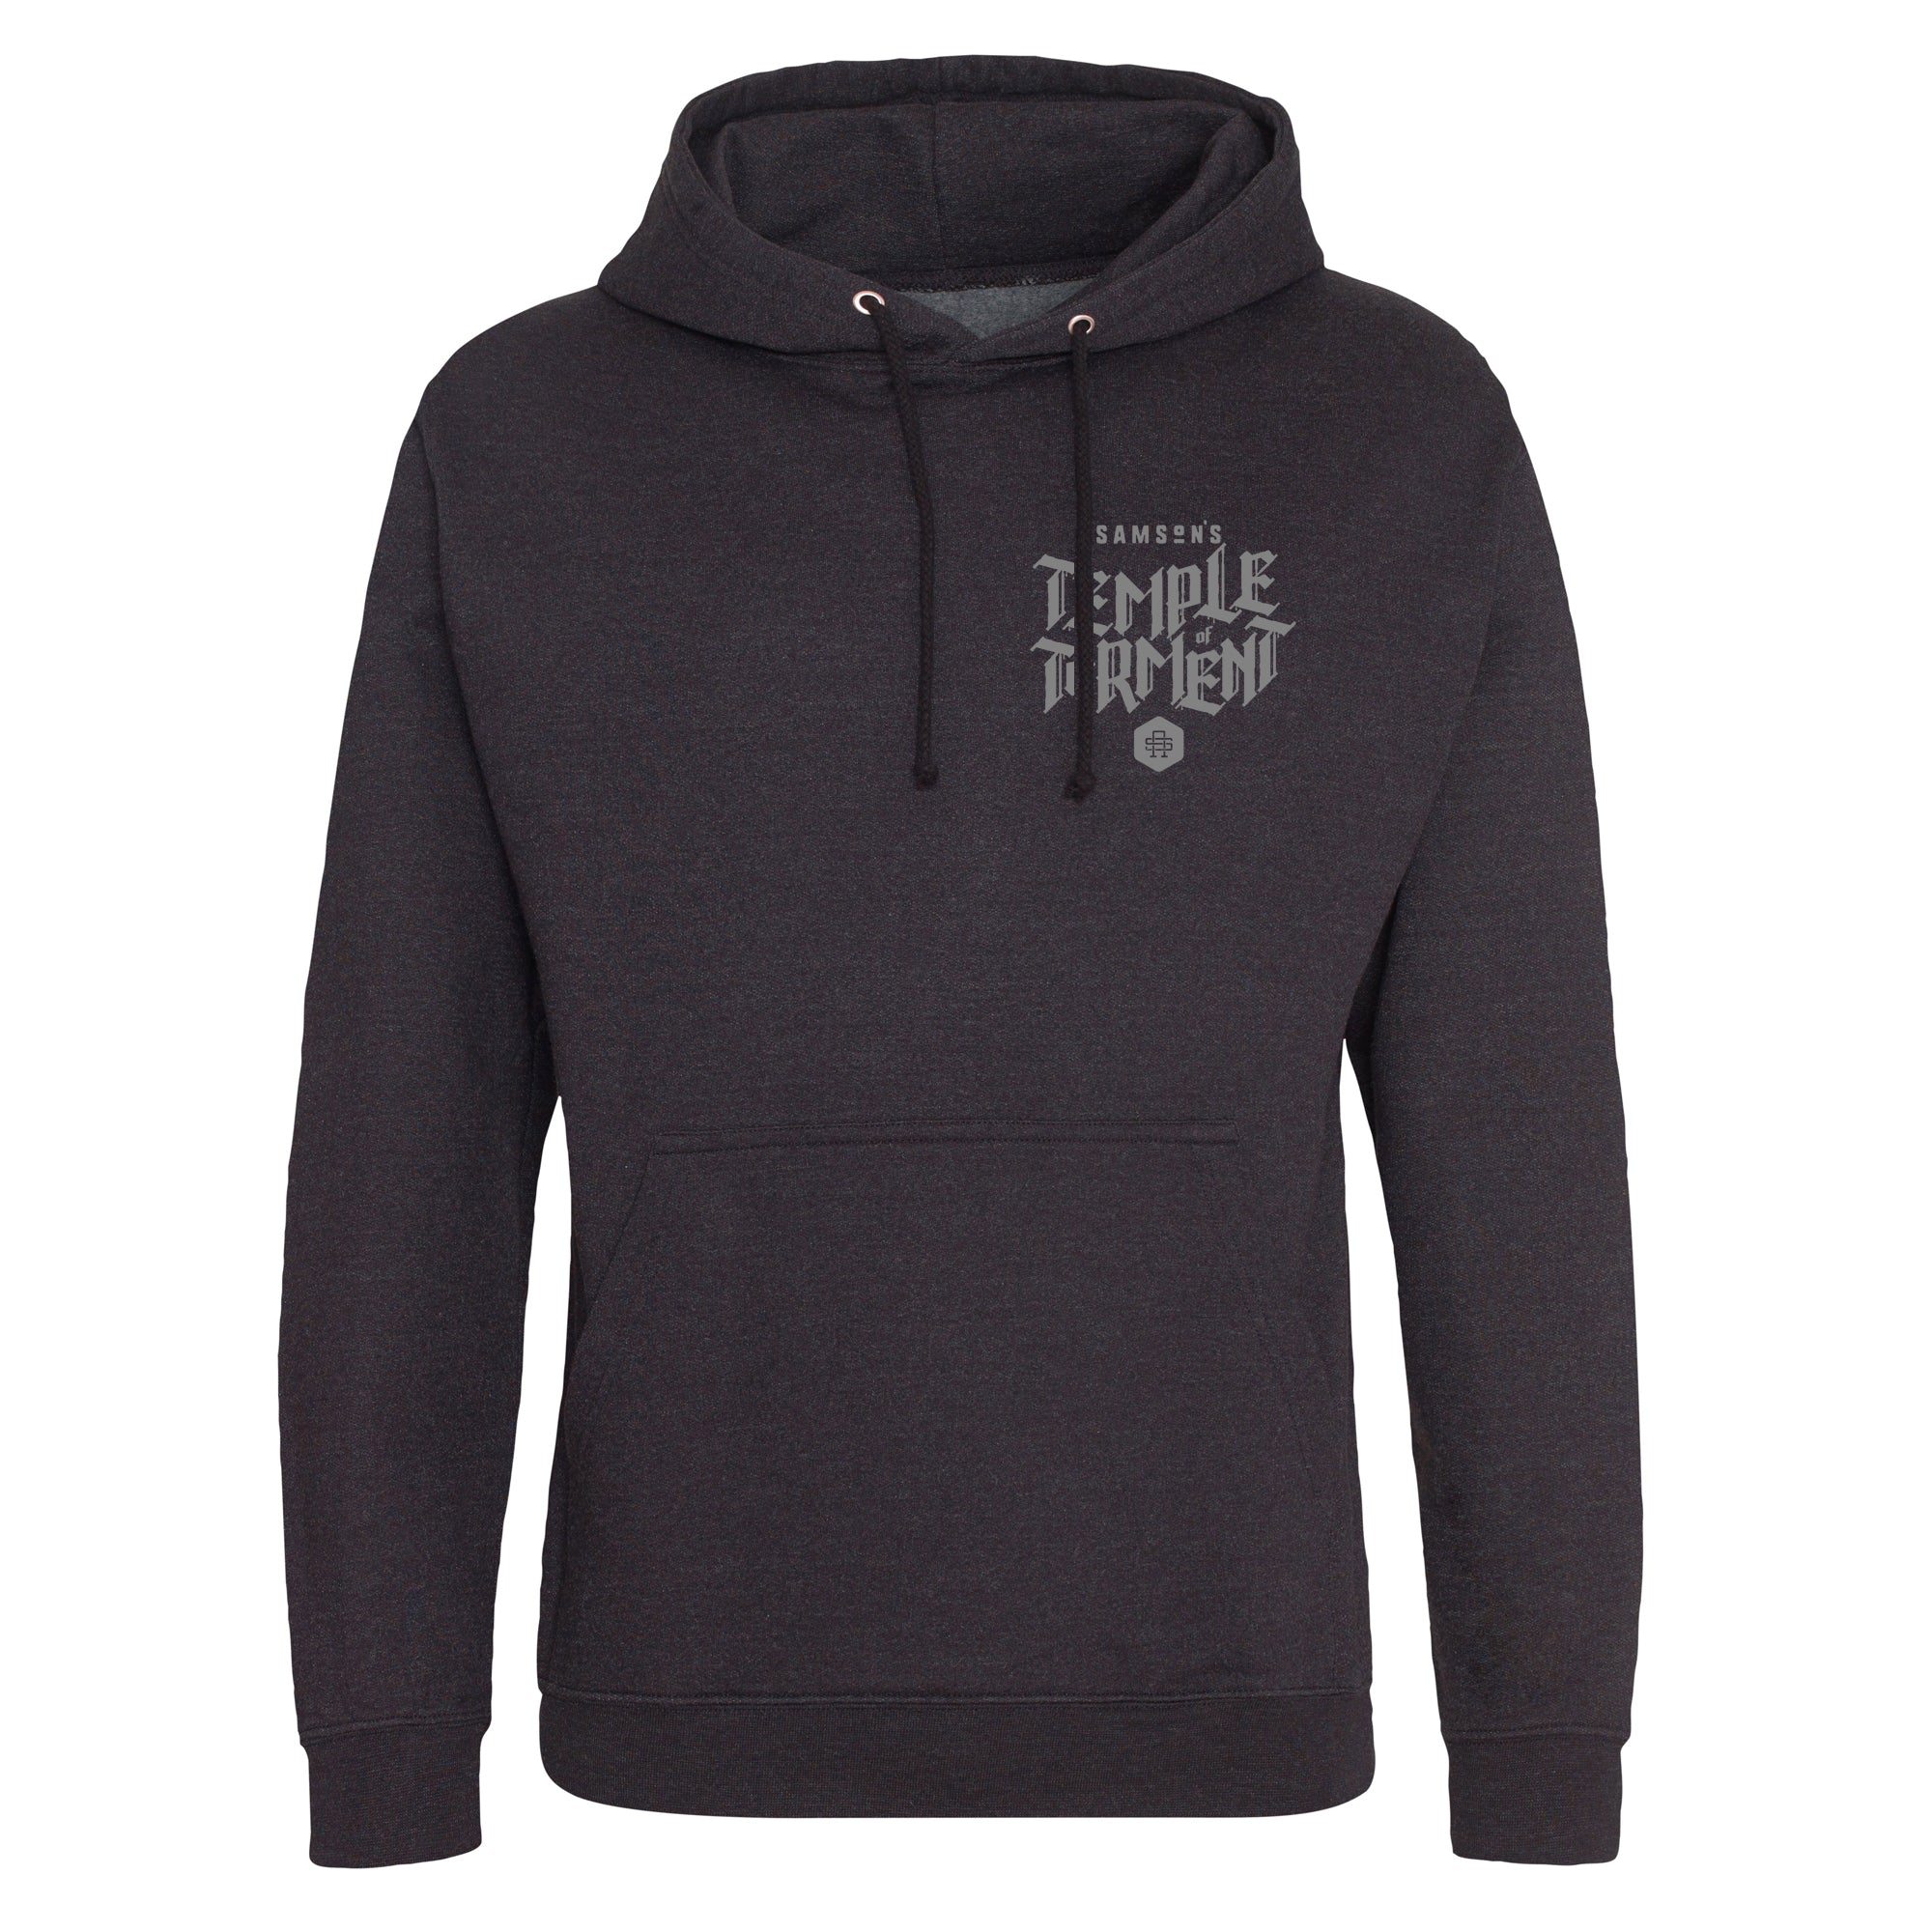 Temple of Torment Hoodie